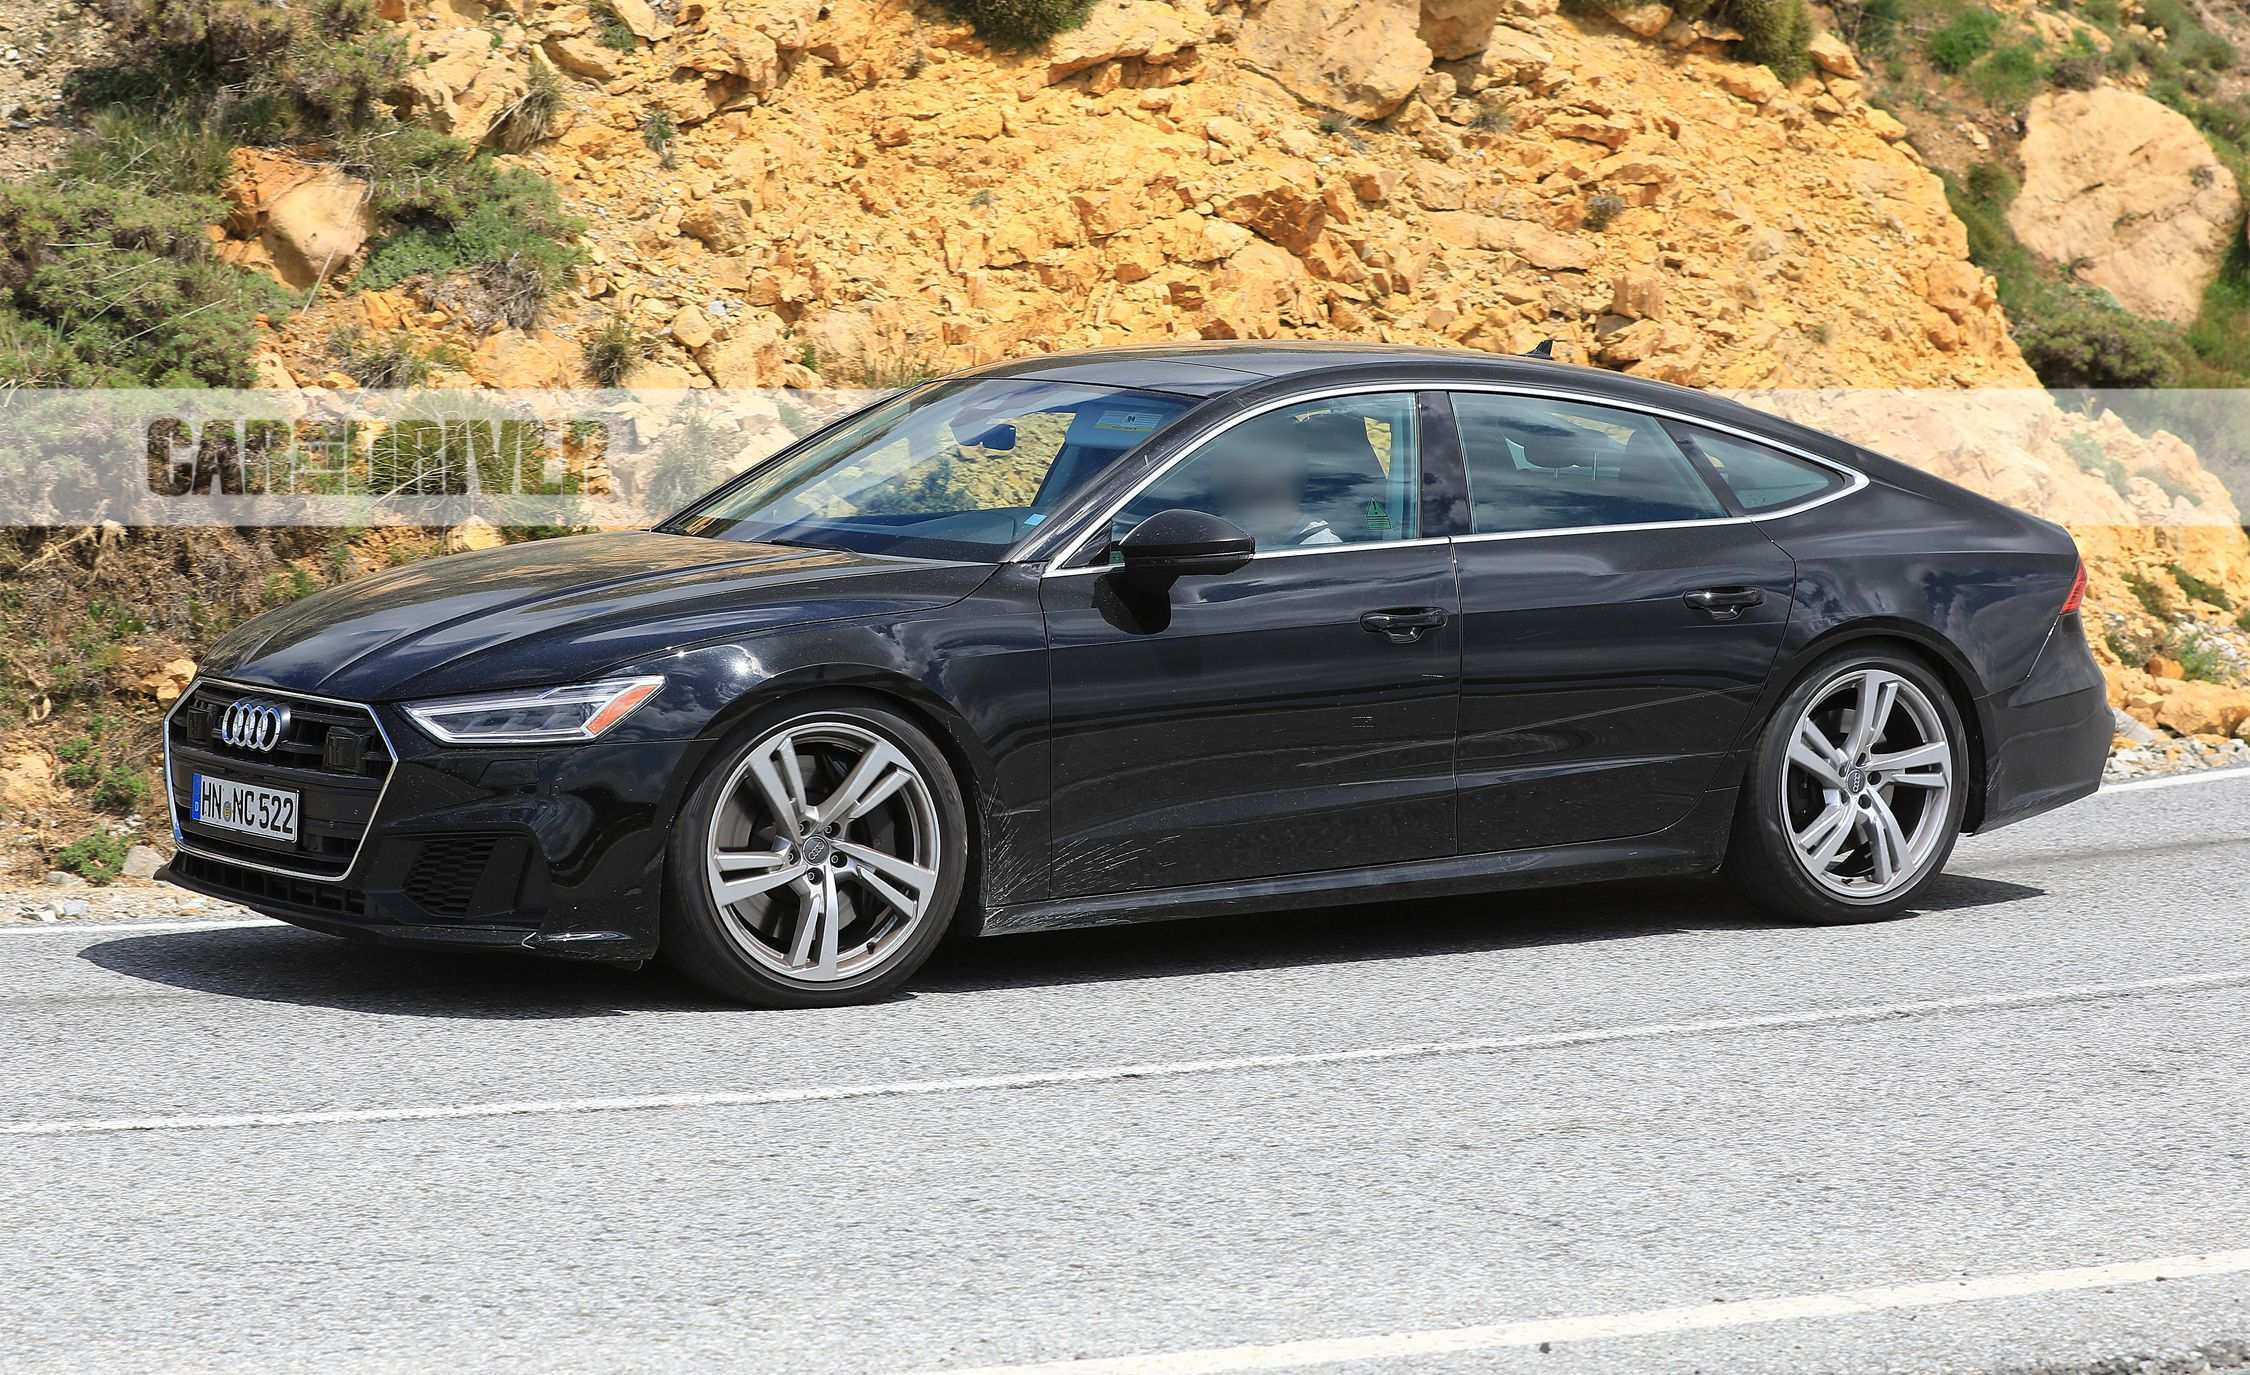 39 The 2020 Audi A7 Reviews with 2020 Audi A7